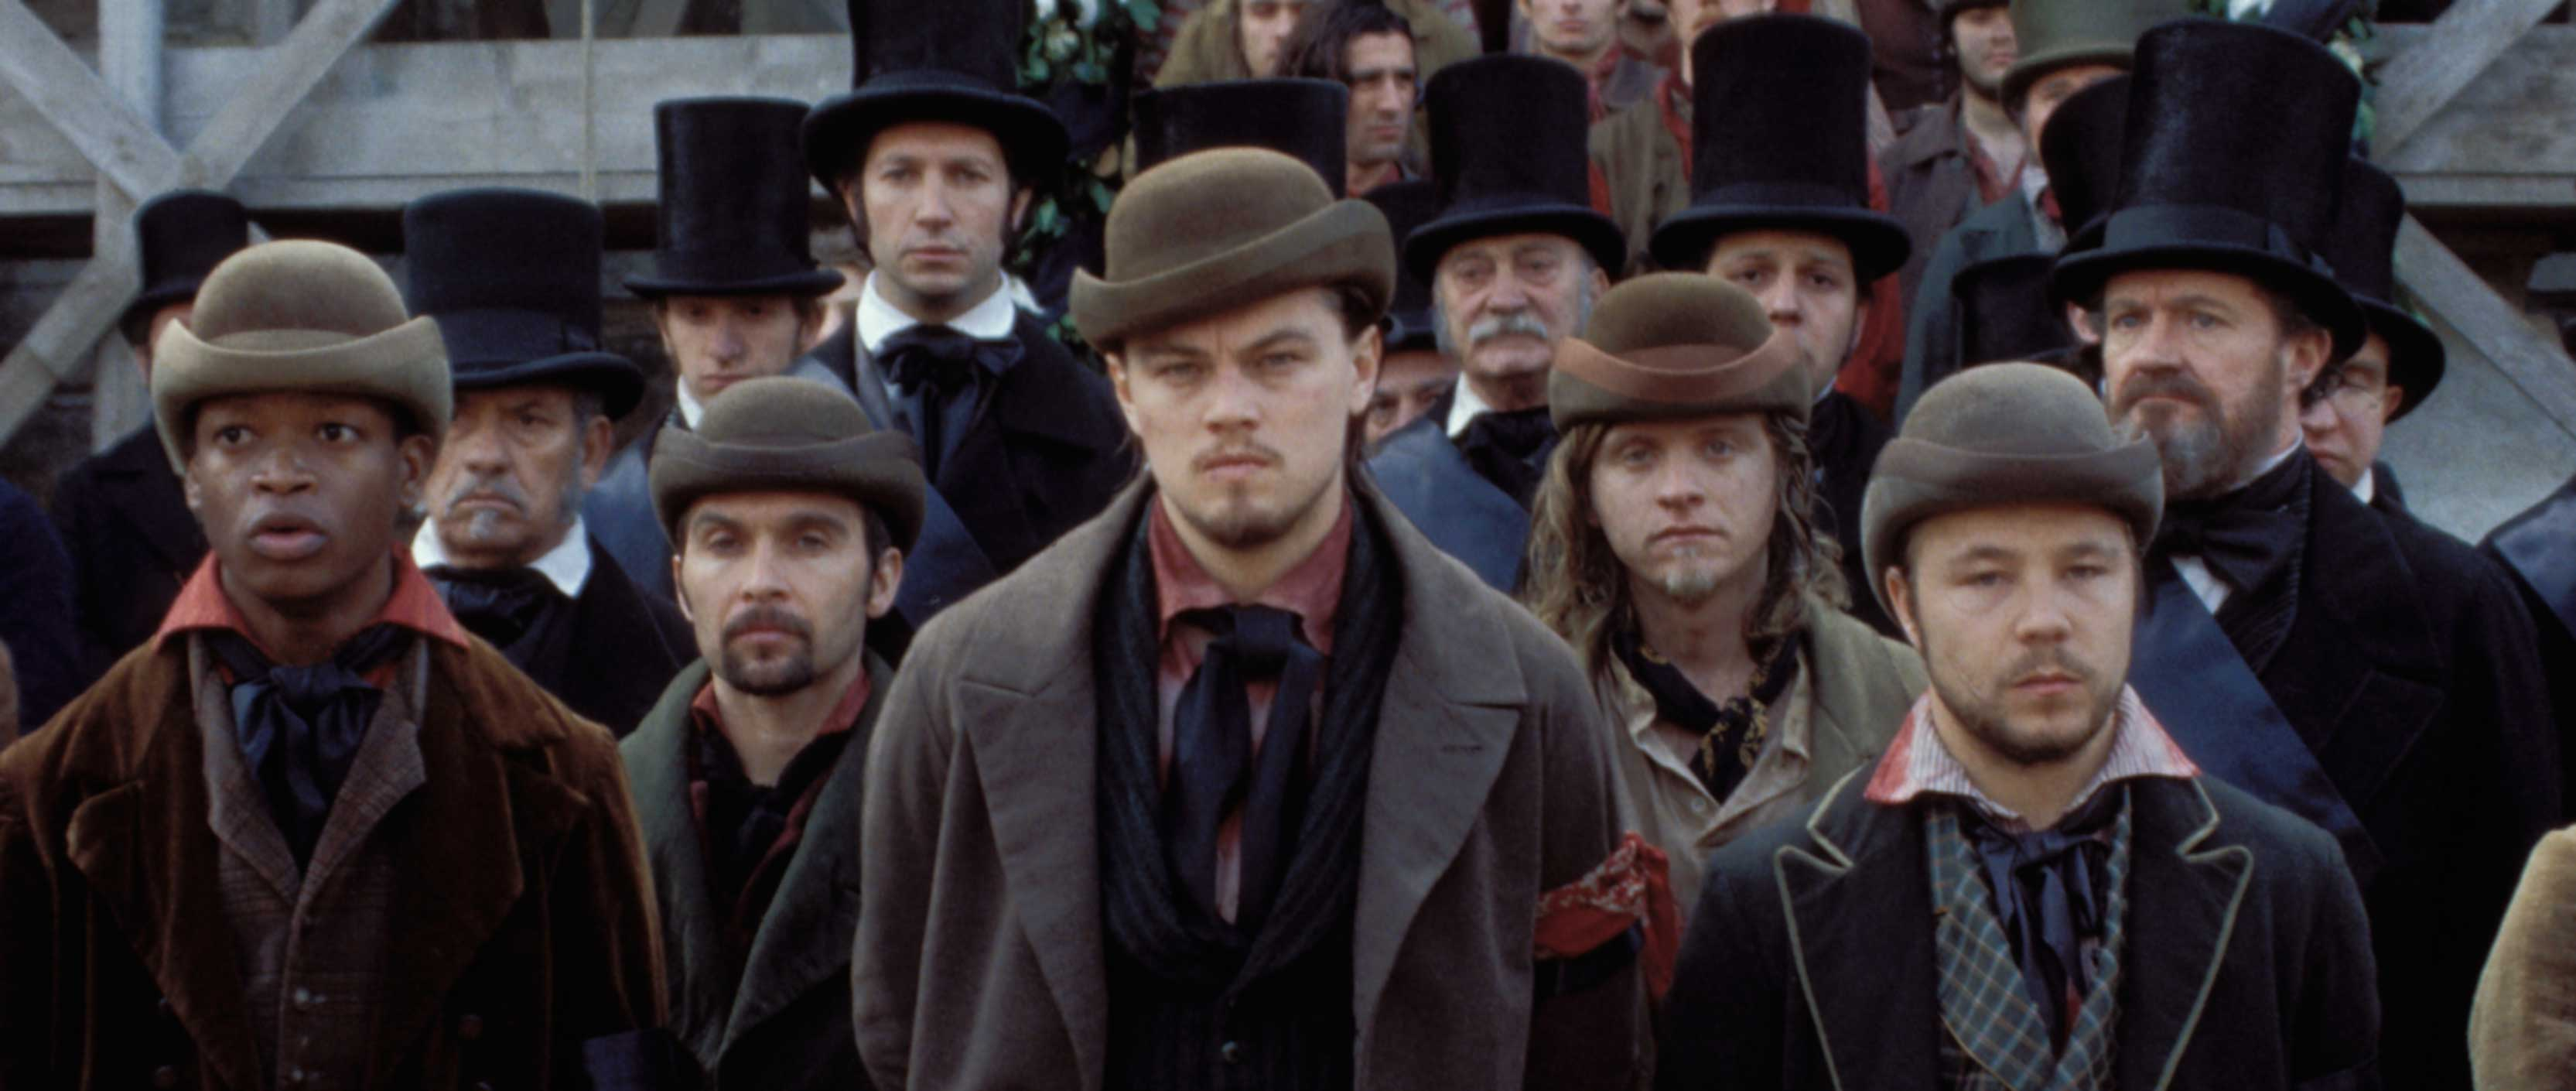 a summary of the movie gangs of new york Find great deals on ebay for gangs of new york and gangs of new york blu ray summary recently leonardo dicaprio gangs of new york movie.